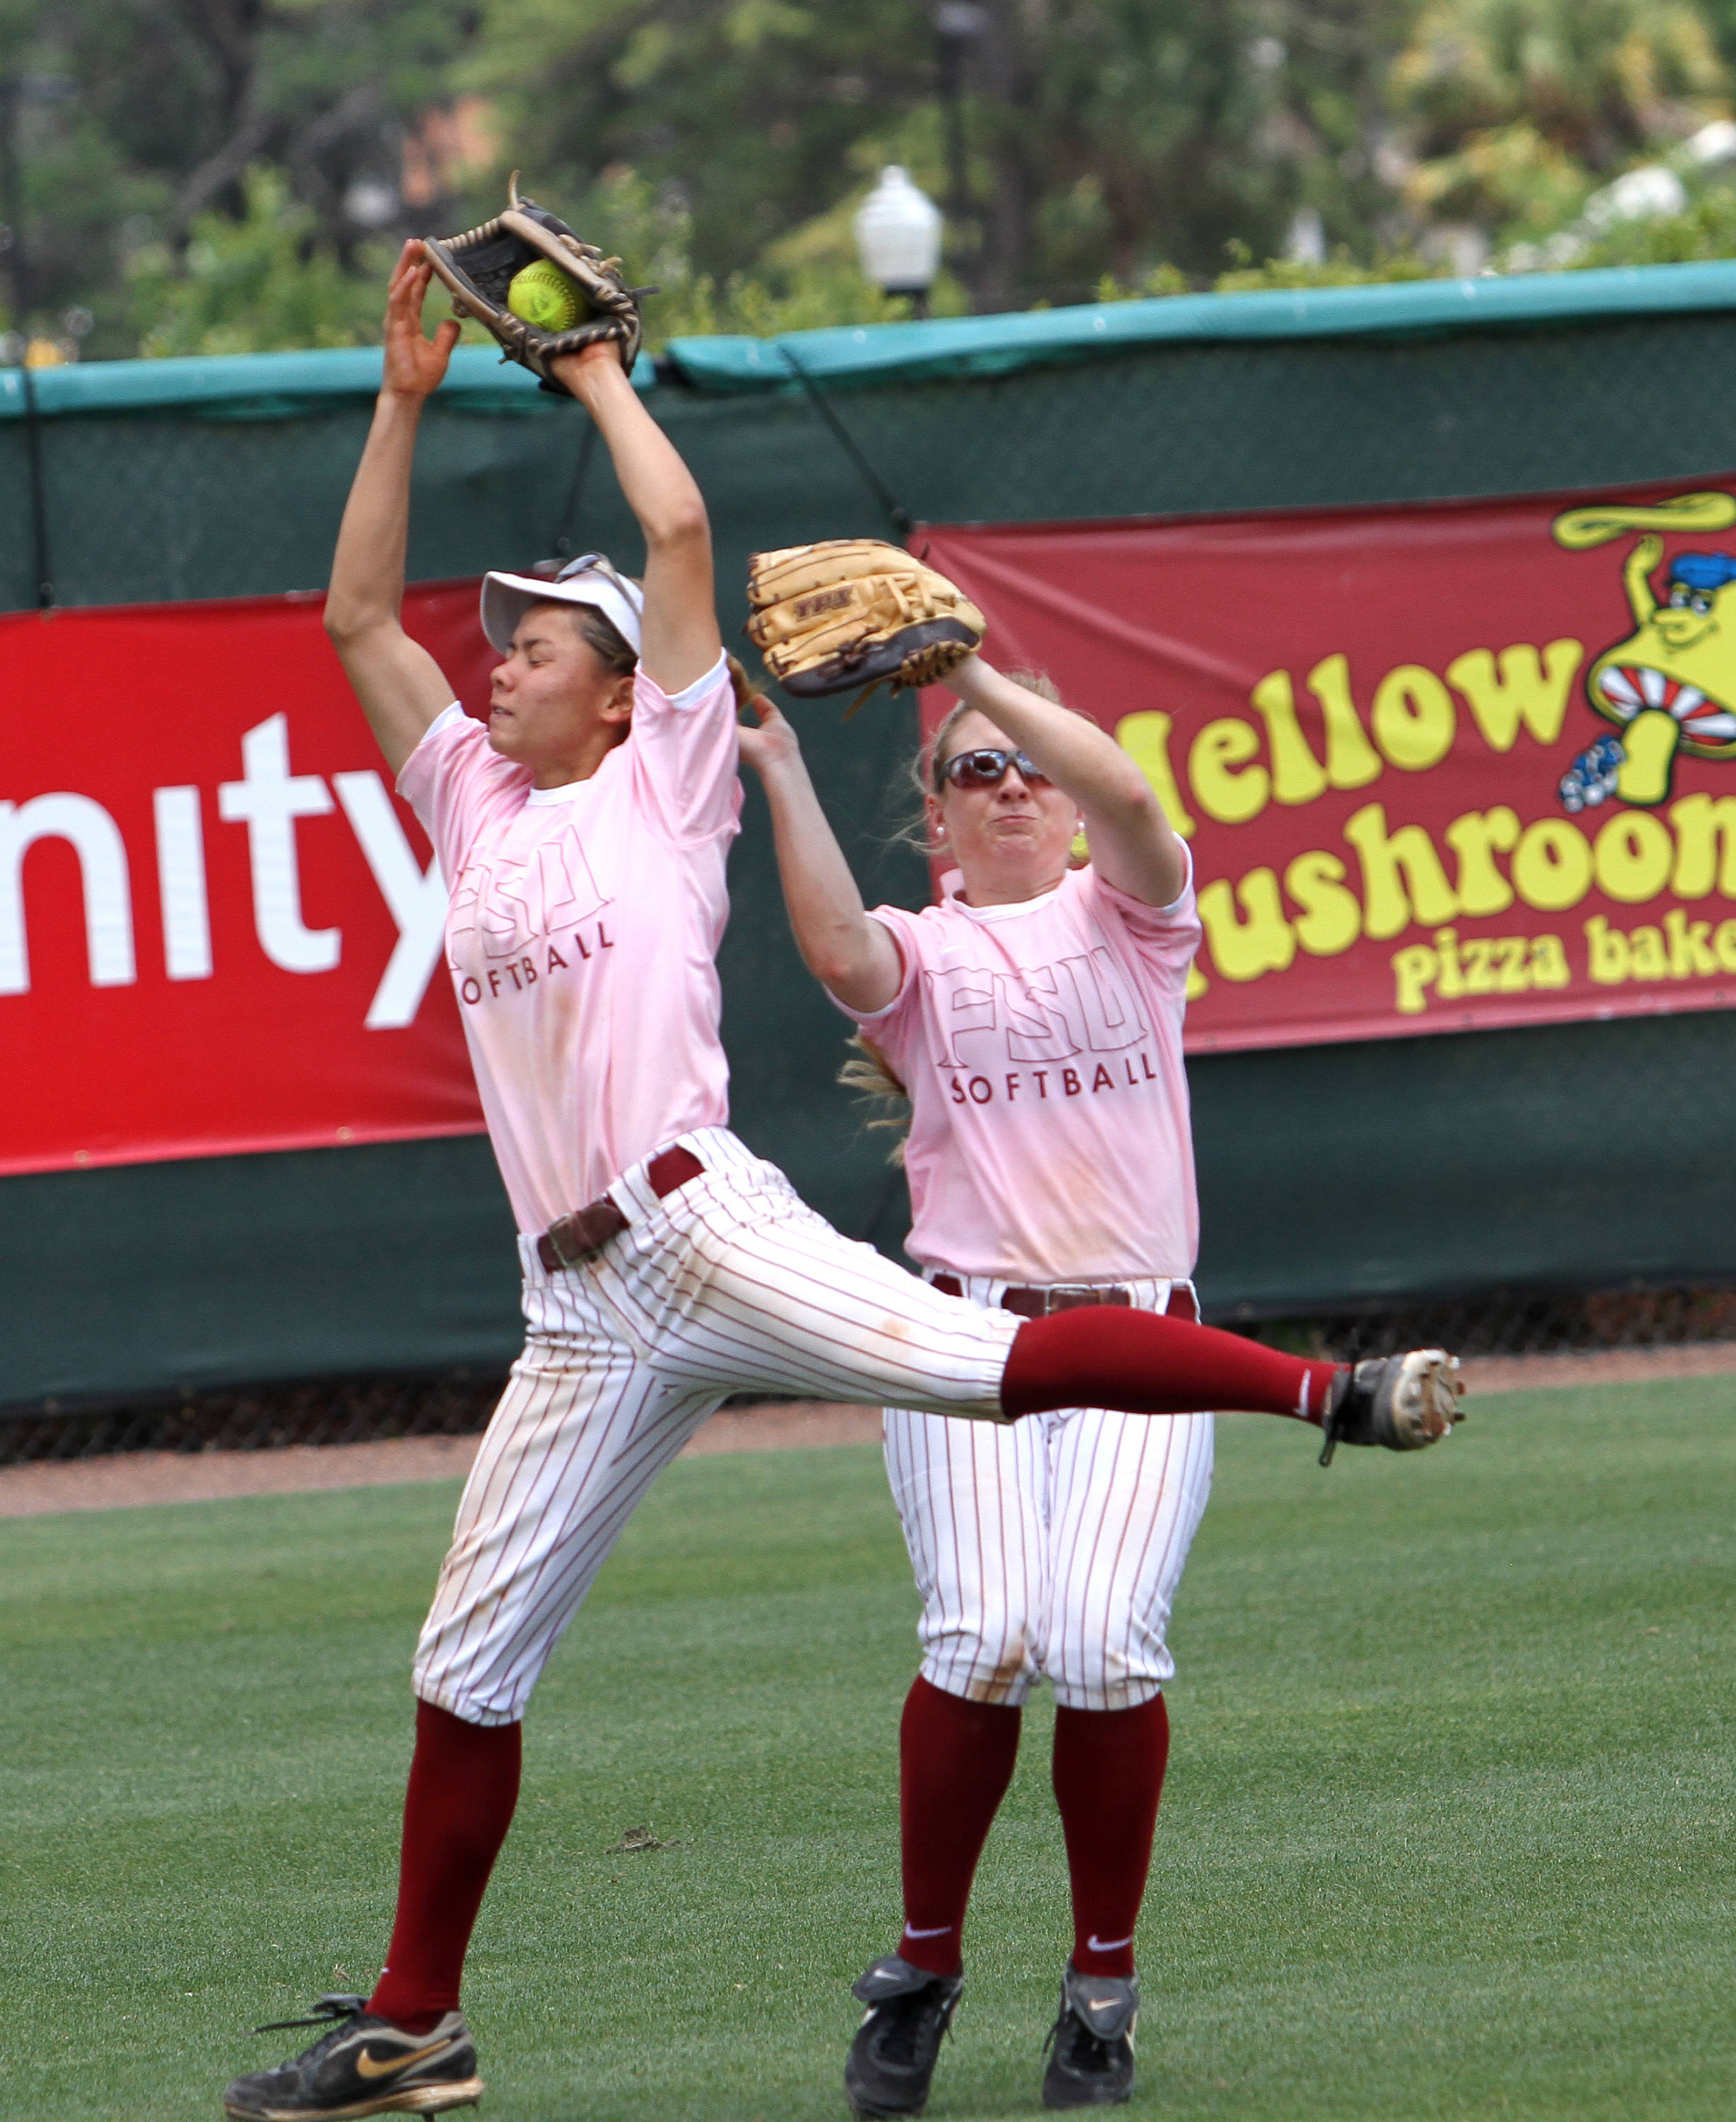 Courtney Senas, Kristin Austin, FSU vs GT,  04/15/2012